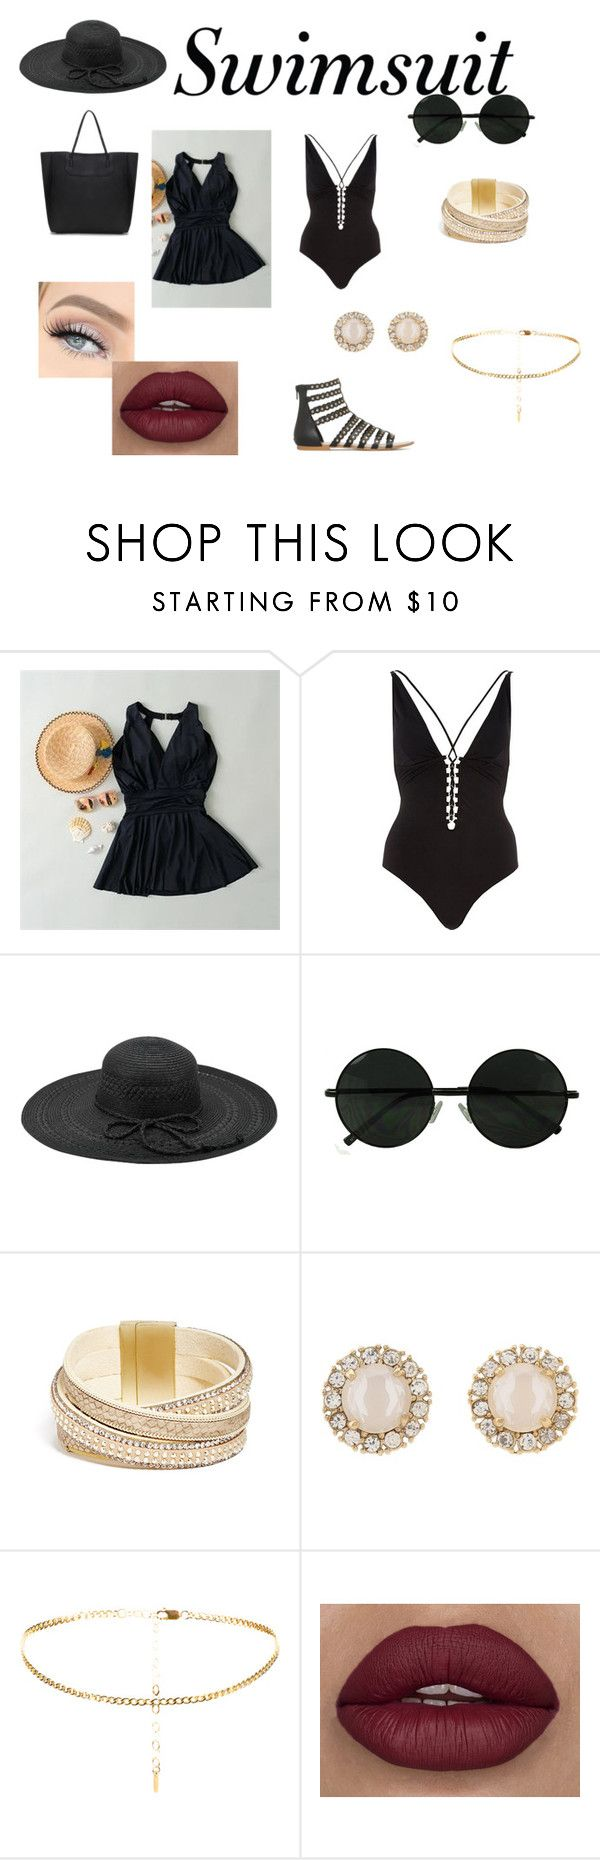 Summer by olgasanchez09 on Polyvore featuring Belleza, Fits, Kate Spade, GUESS and River Island